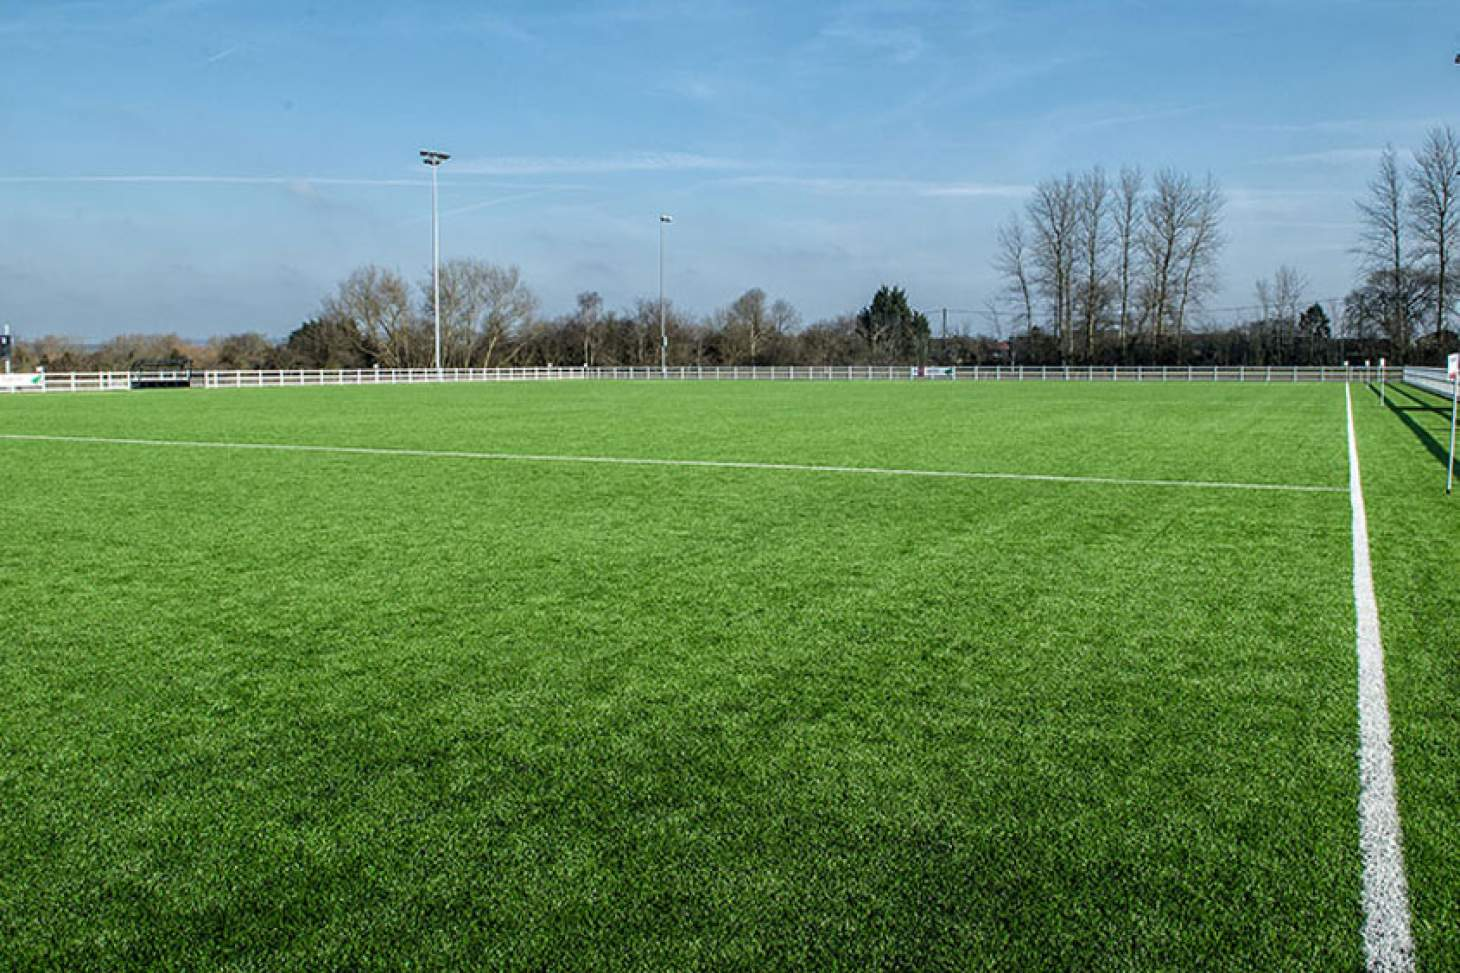 PlayFootball Walsall 5 a side | 3G Astroturf football pitch